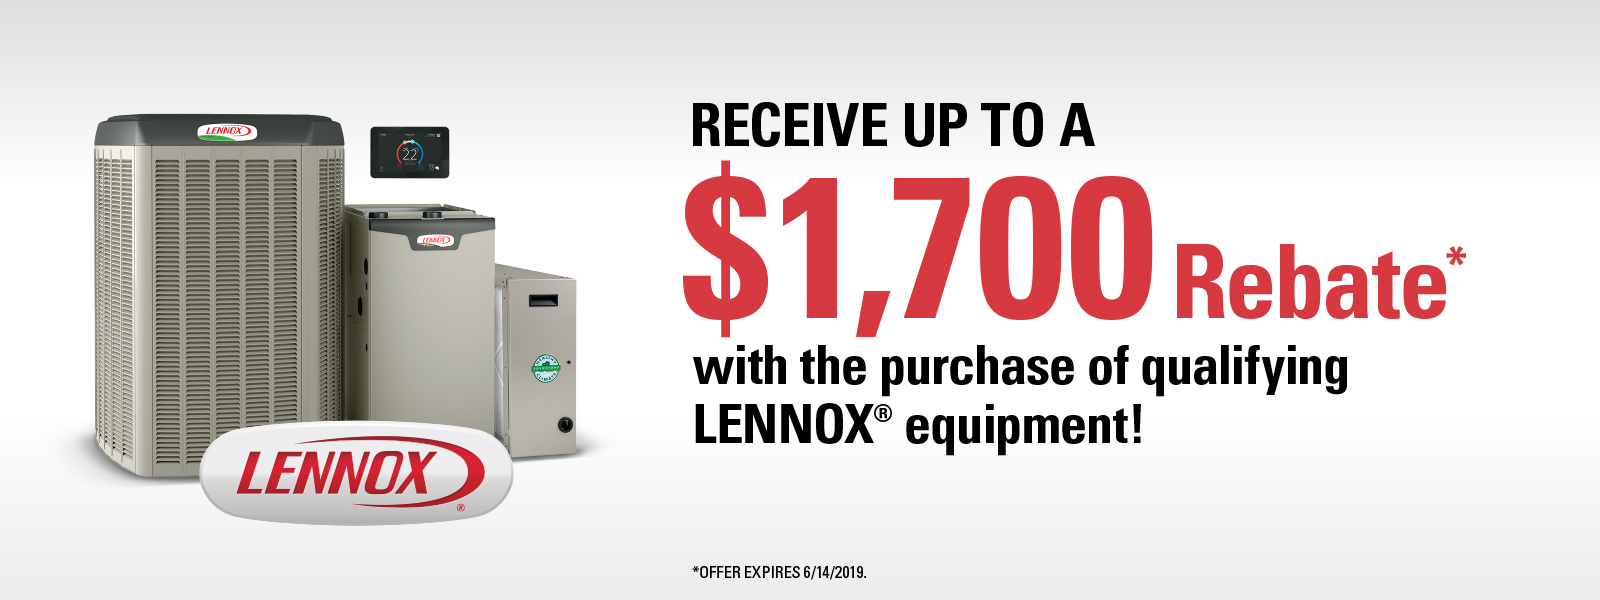 Receive Up To A $1,700 Rebate*